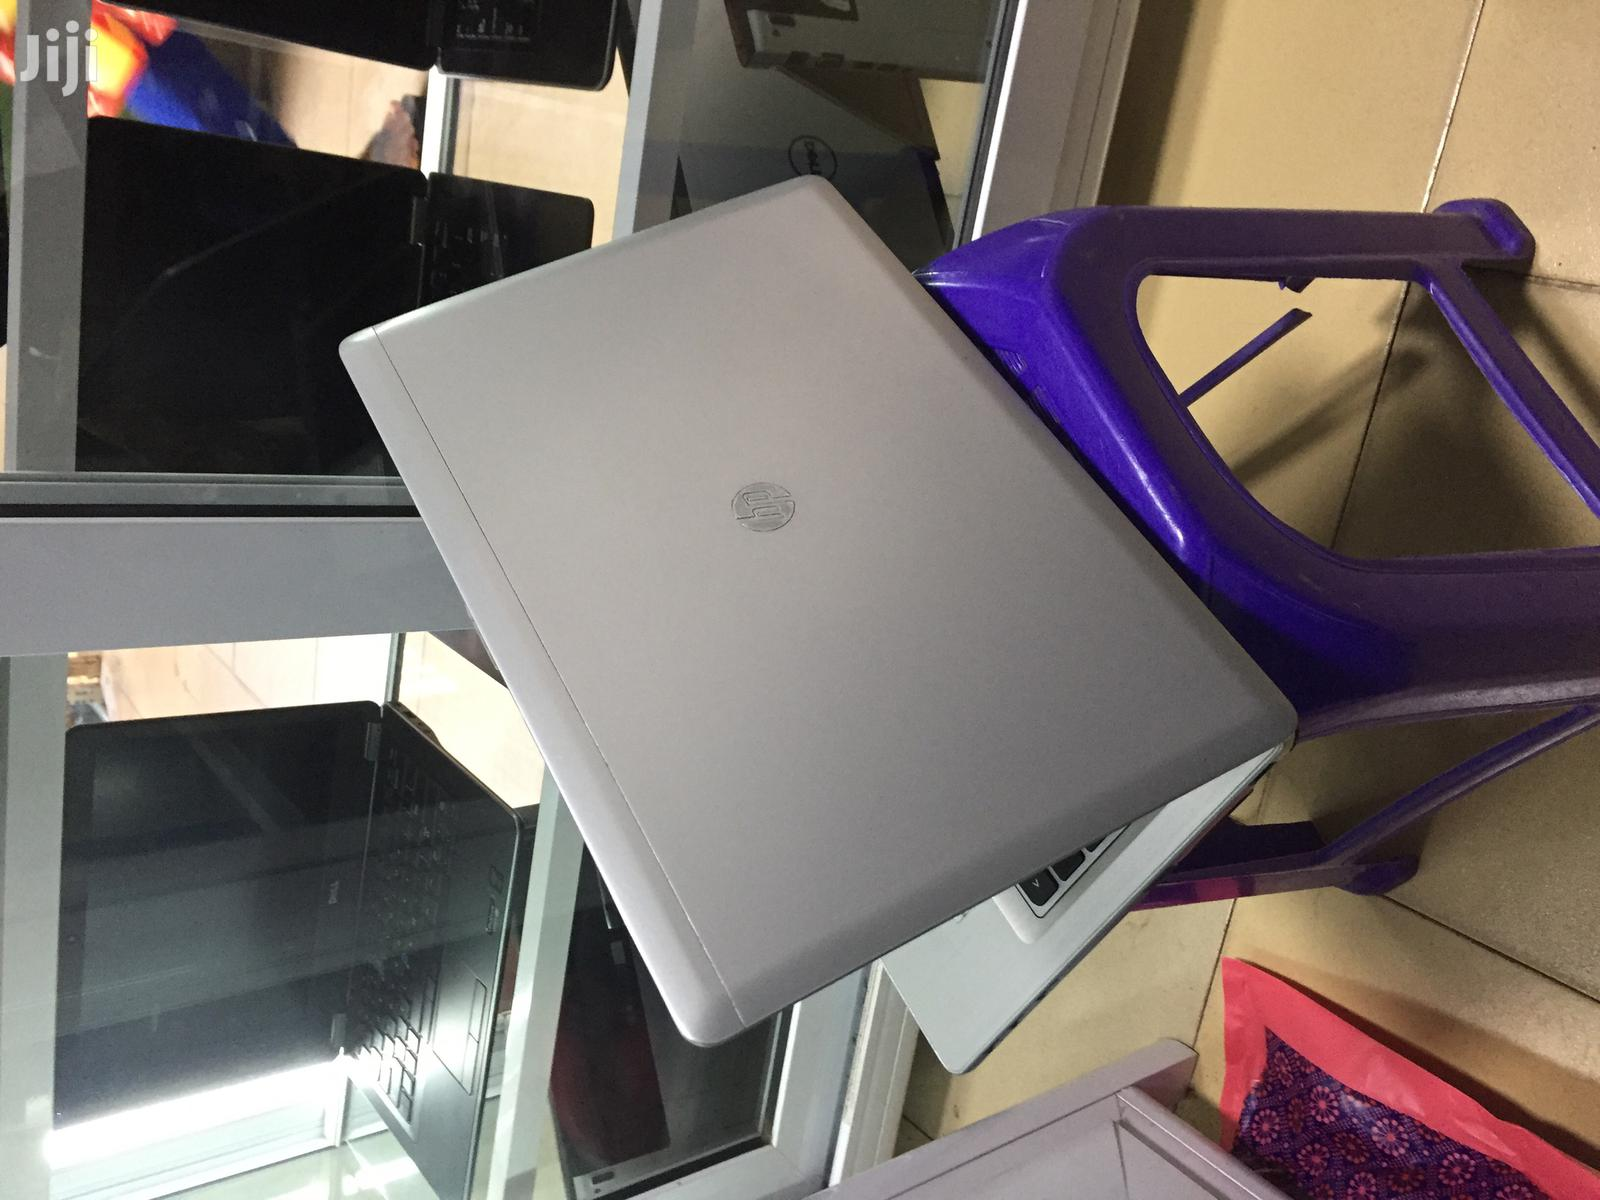 Laptop HP EliteBook Folio 9470M 8GB Intel Core i7 HDD 500GB | Laptops & Computers for sale in Kokomlemle, Greater Accra, Ghana